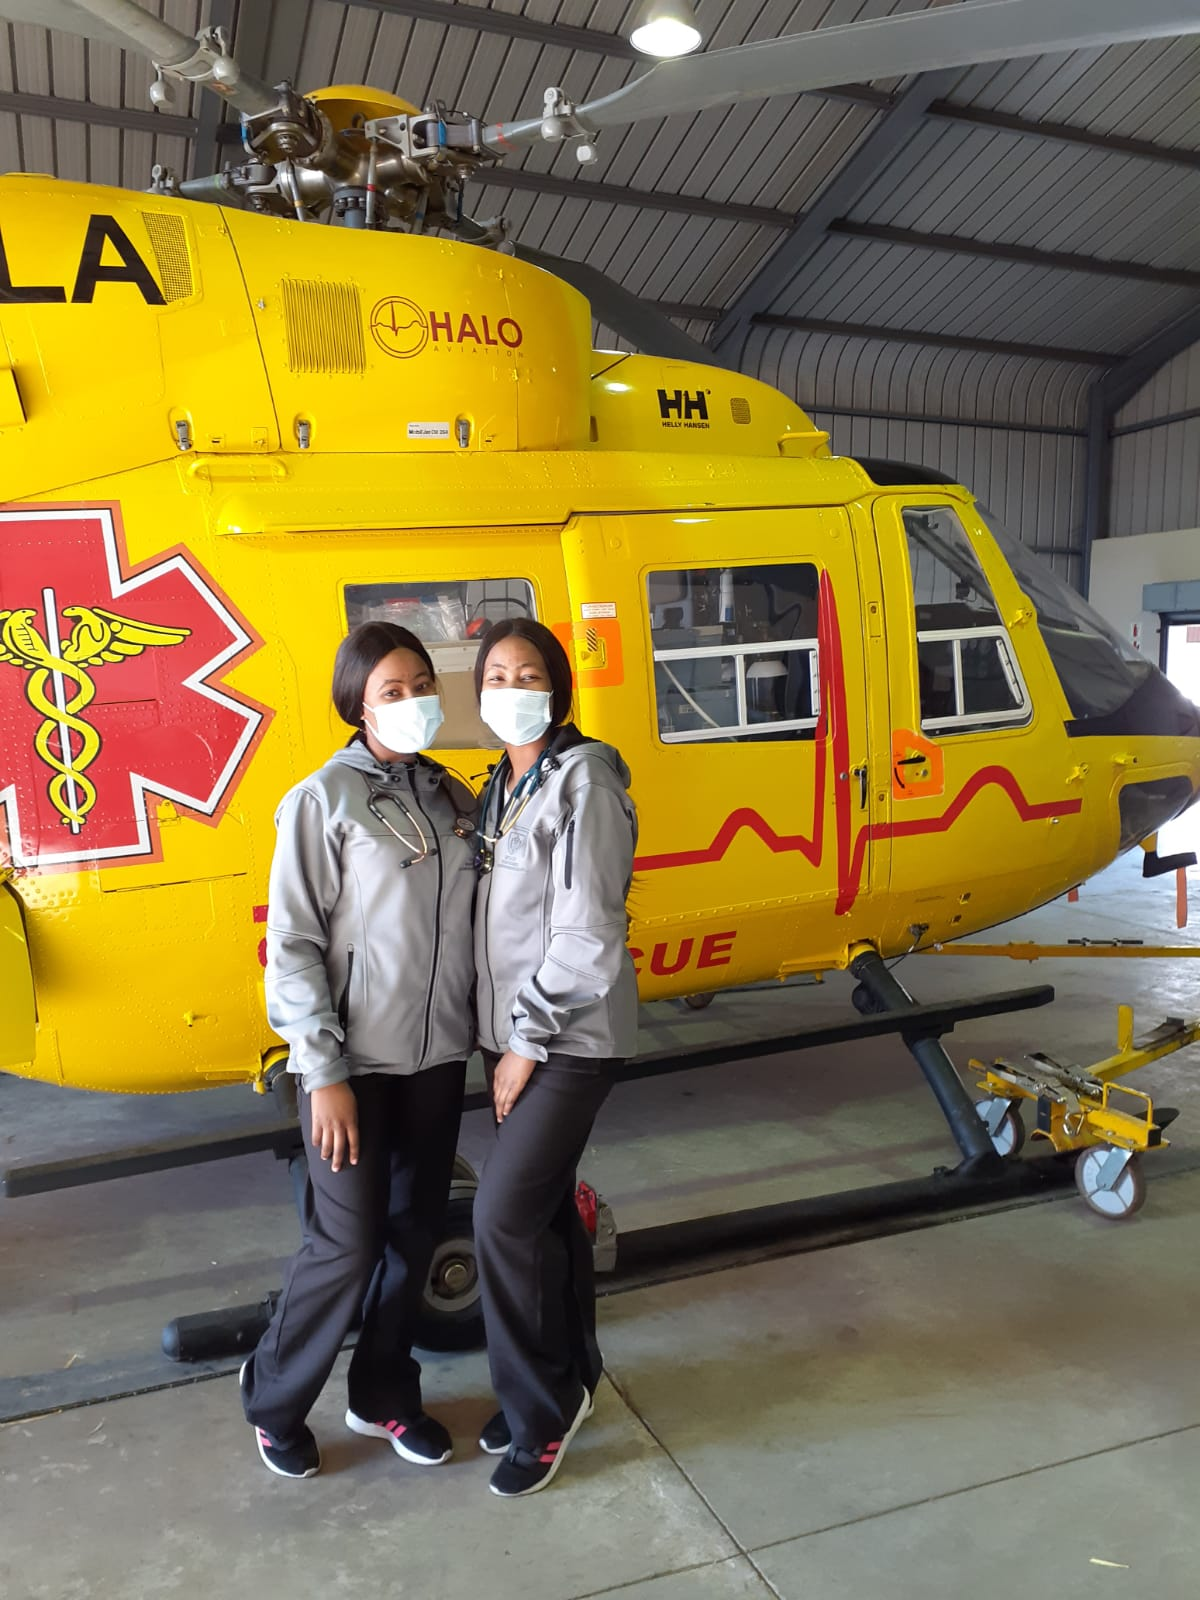 Drs Keitumetse (left) and Boitumelo (right) Molise pose next to a medical rescue helicopter